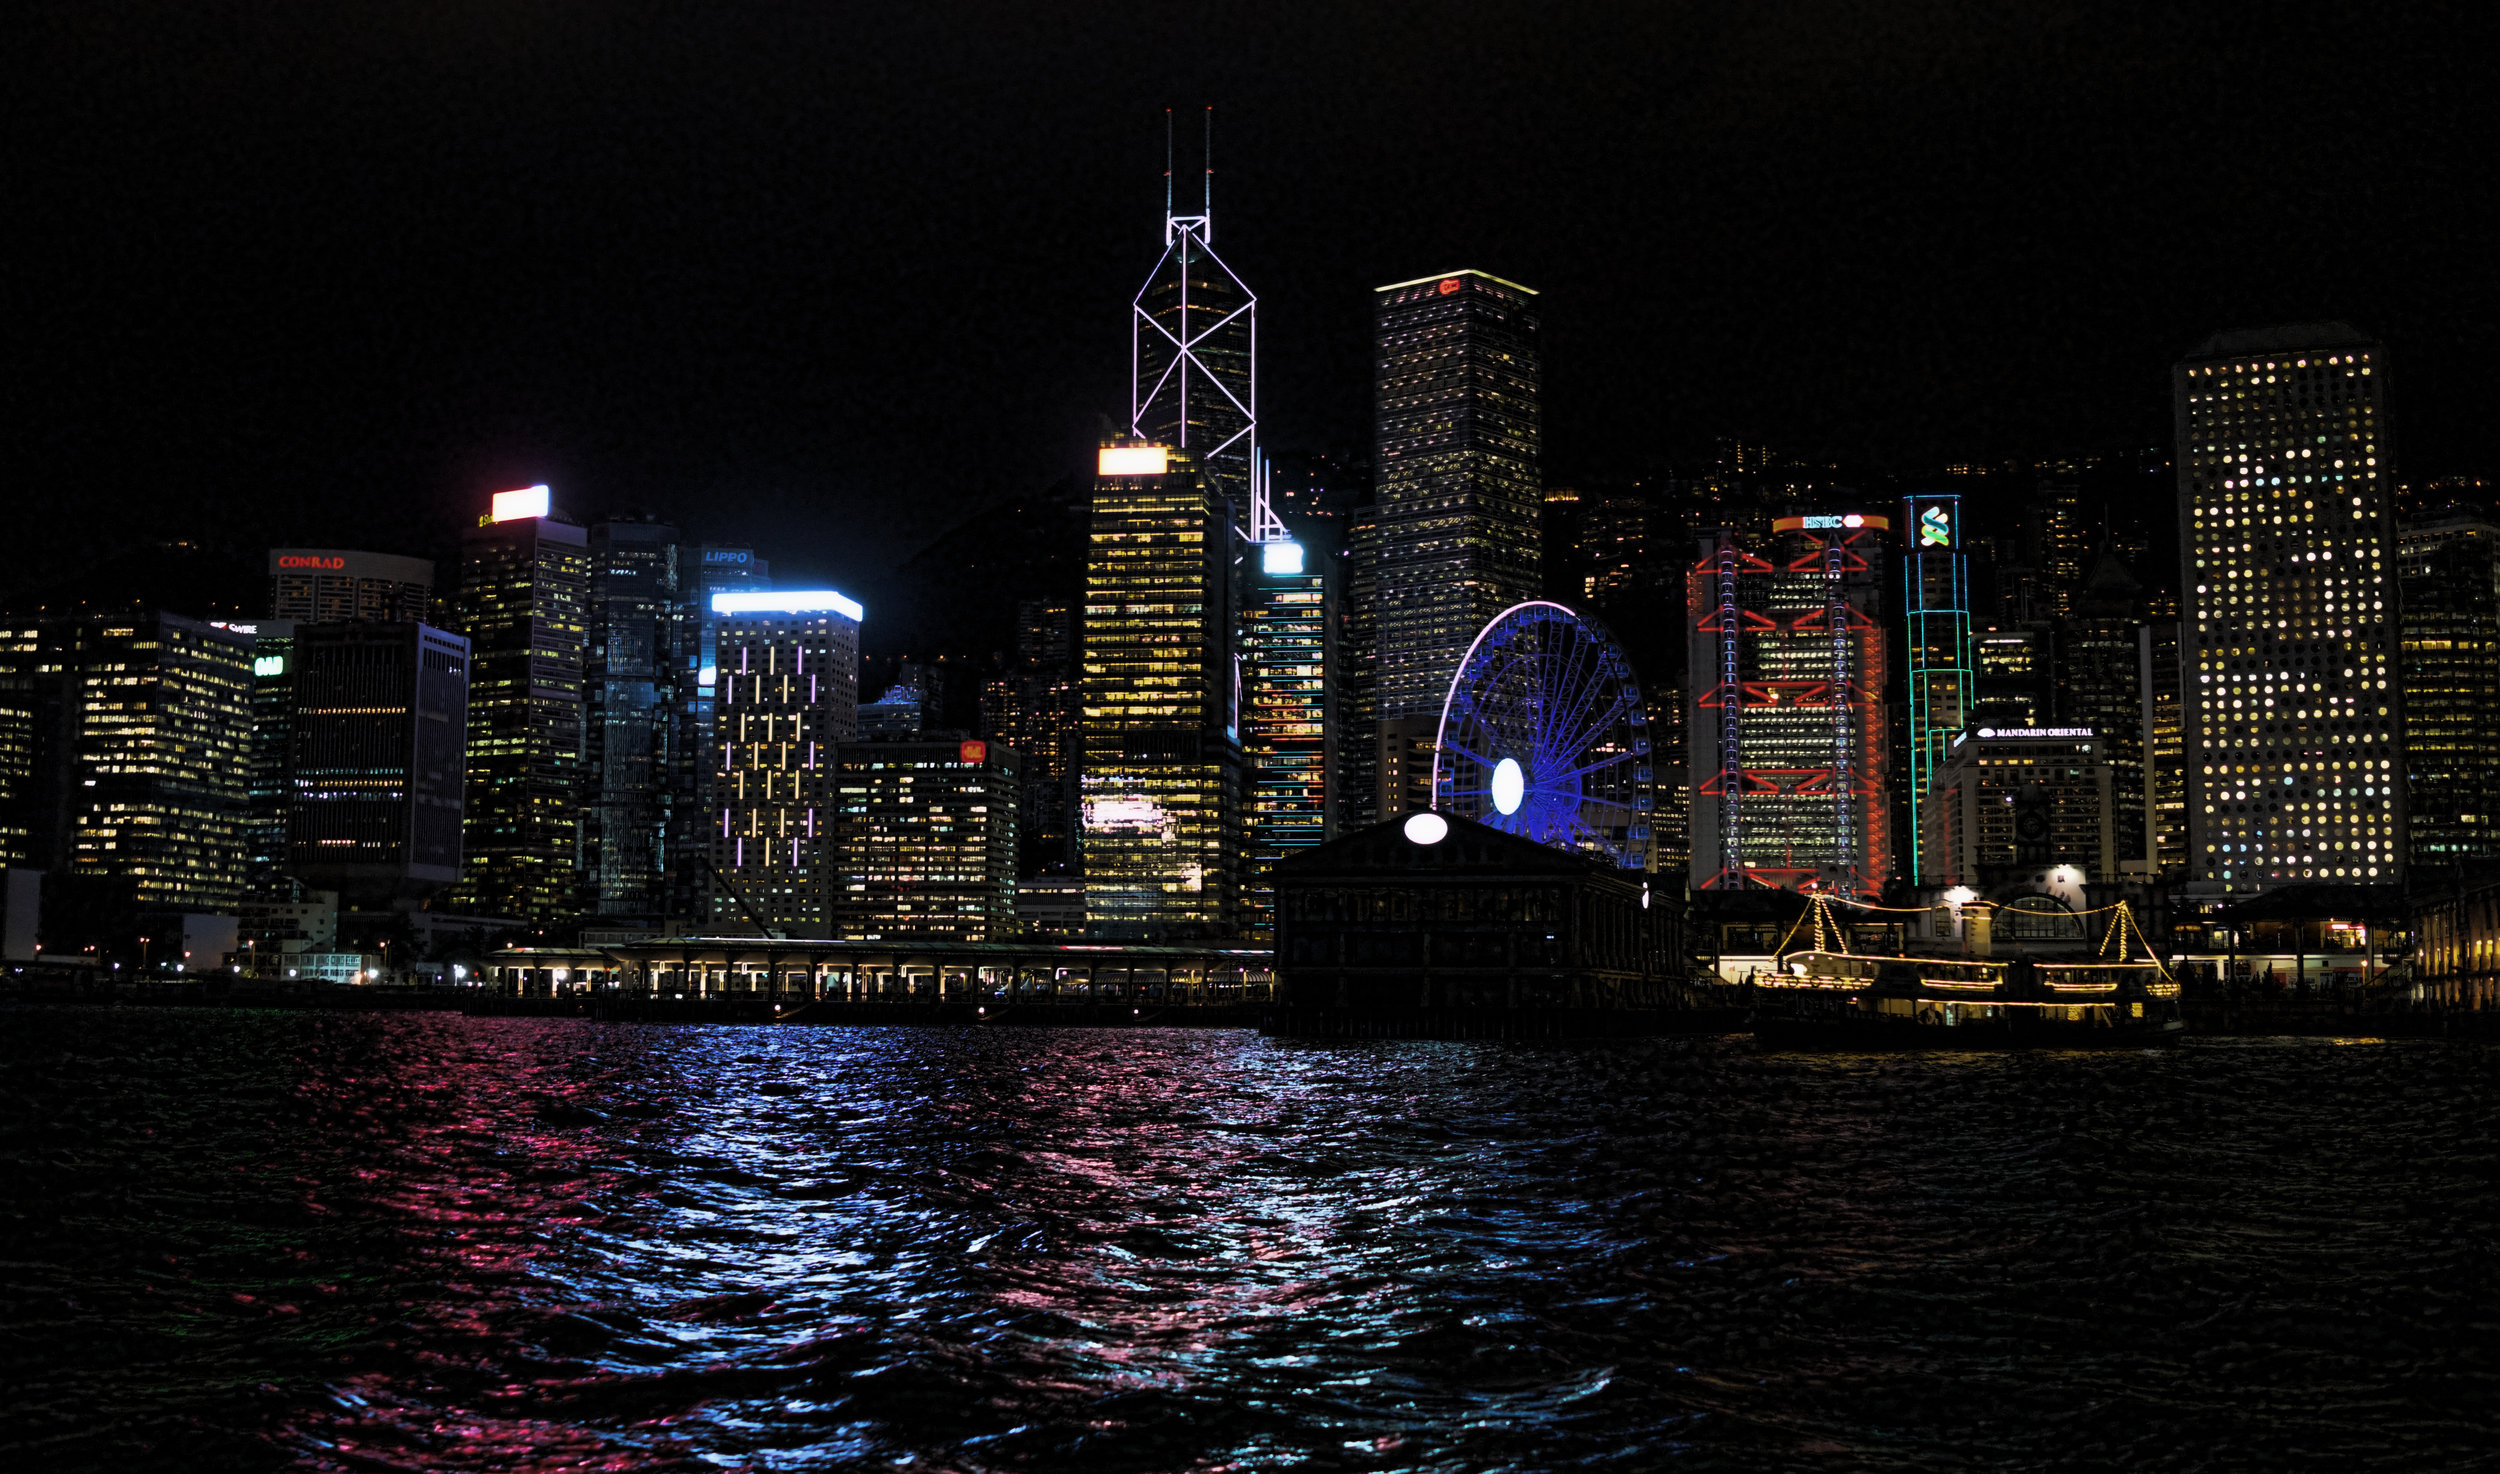 Hong Kong Island at night from the Star Ferry in Hong Kong Harbour